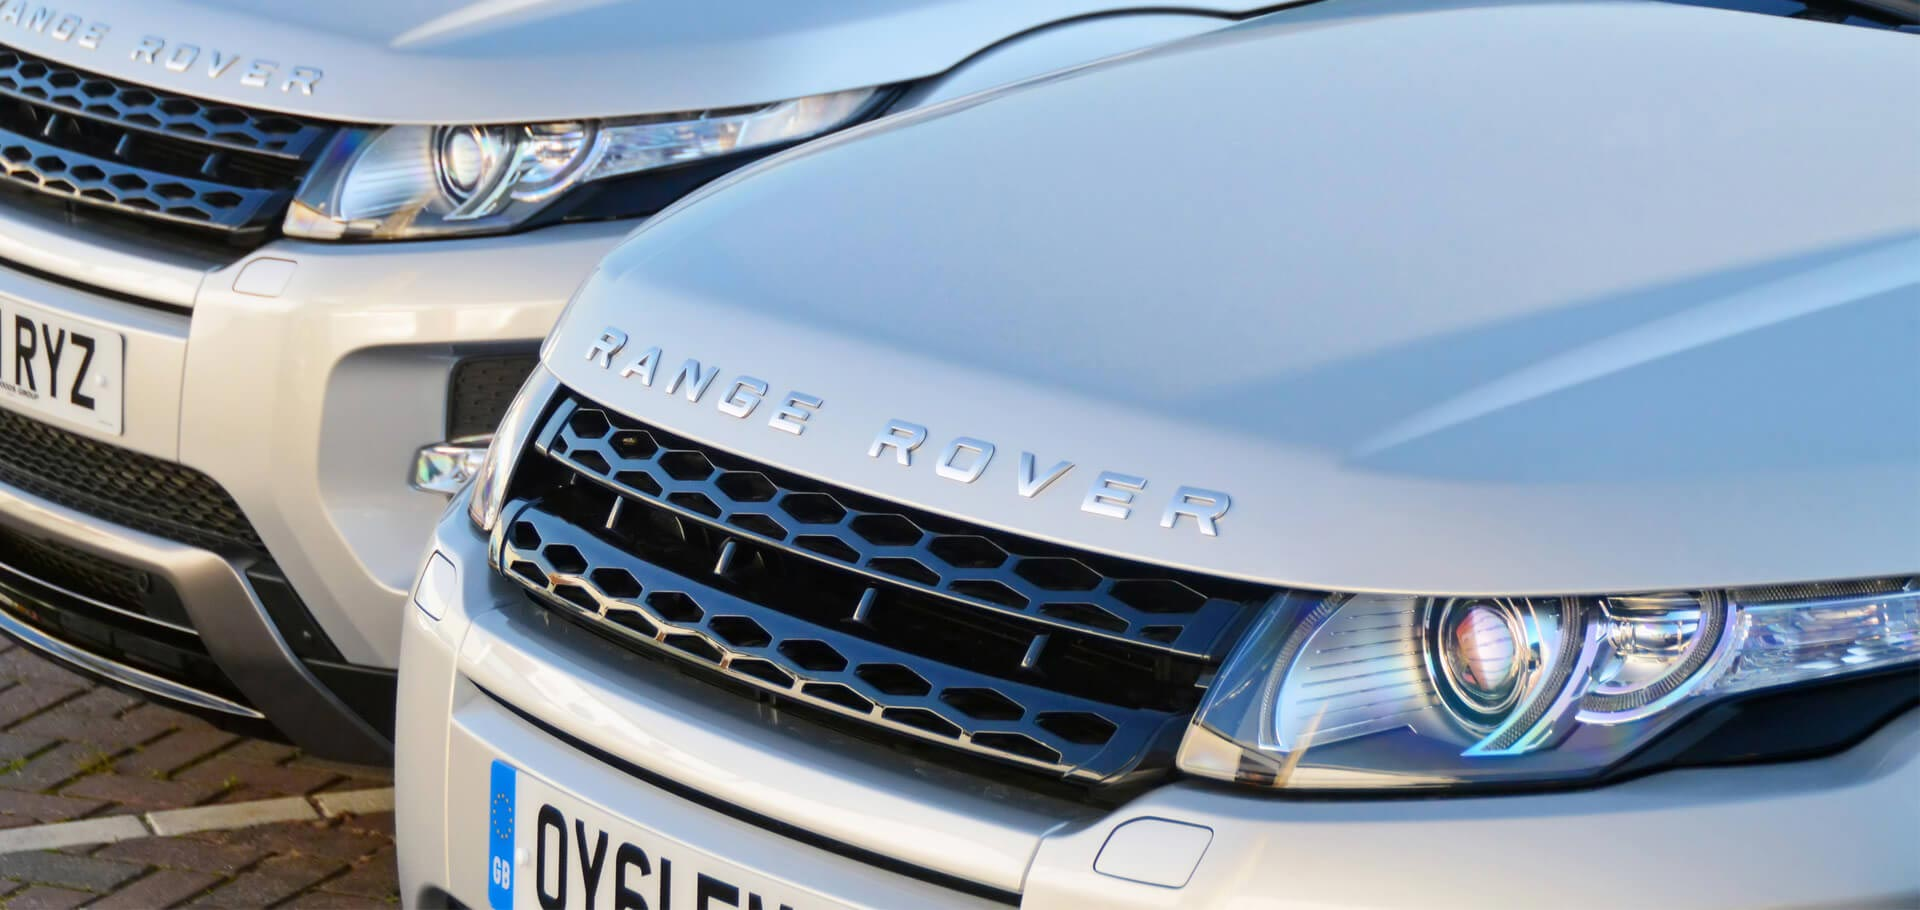 Silver Range Rovers